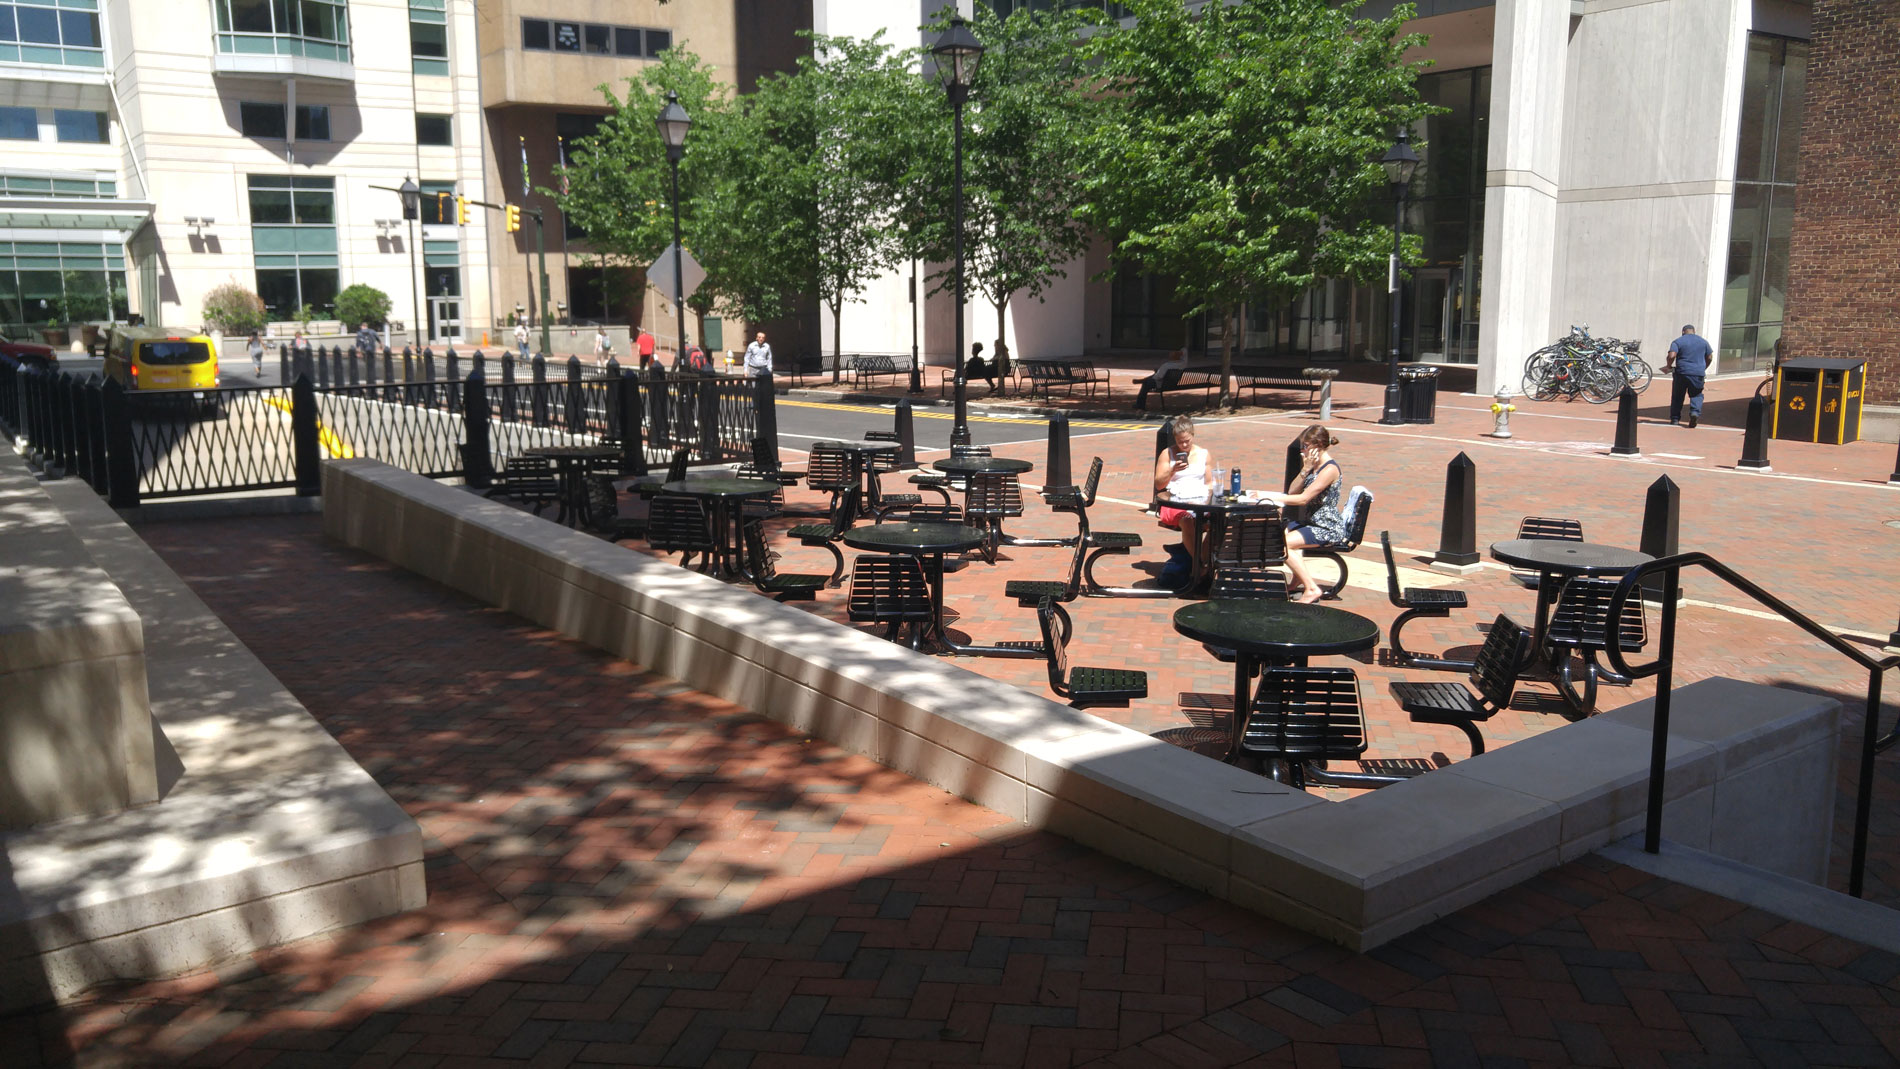 Pedestrian Commons, Virginia Commonwealth University, Richmond, Virginia